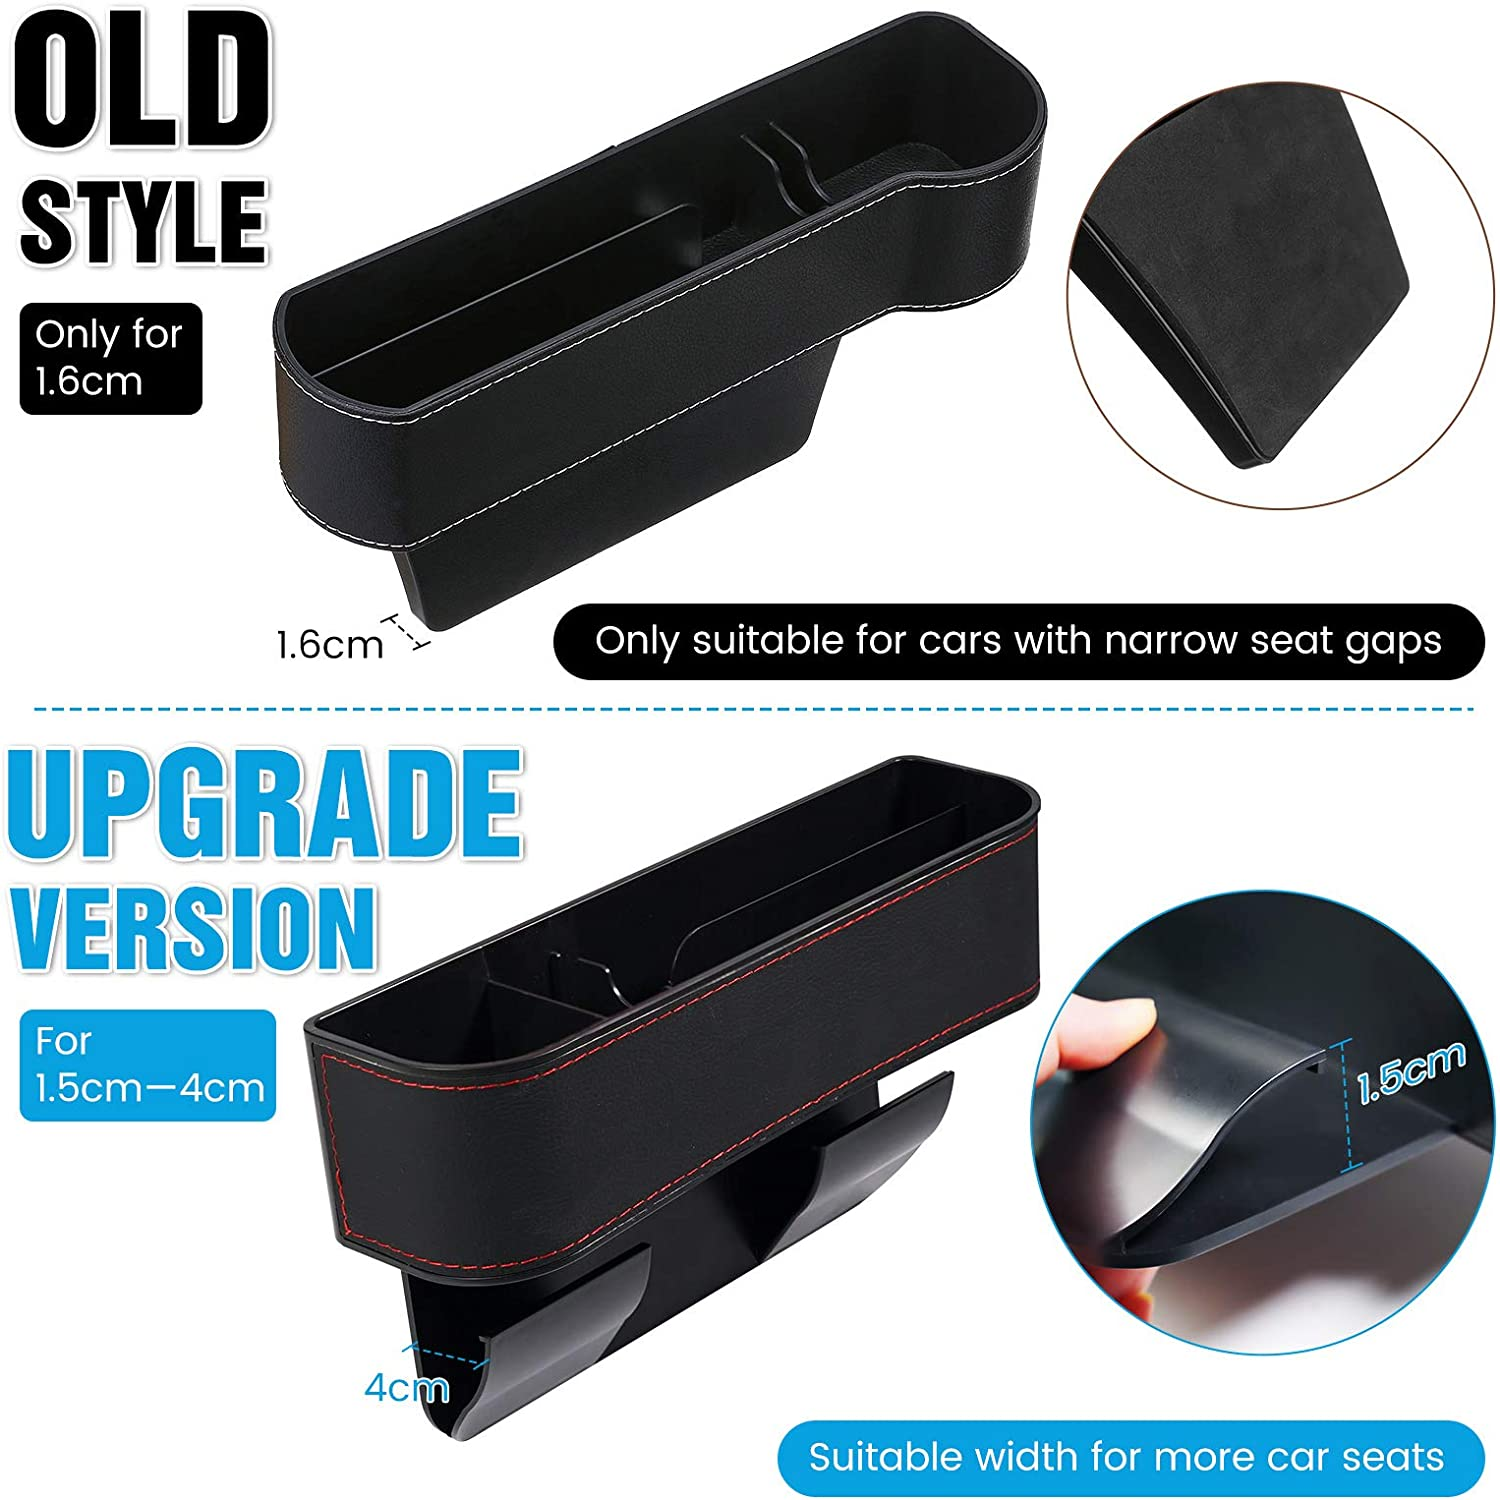 Sunglasses Cards 2 Car Hooks Keys 2 PCS Car Seat Gap Organizer PU Leather Car Seat Storage Box with Cup Holder Wallets Seat Console Side Pocket for Cellphones CHARMINER Car Seat Gap Filler